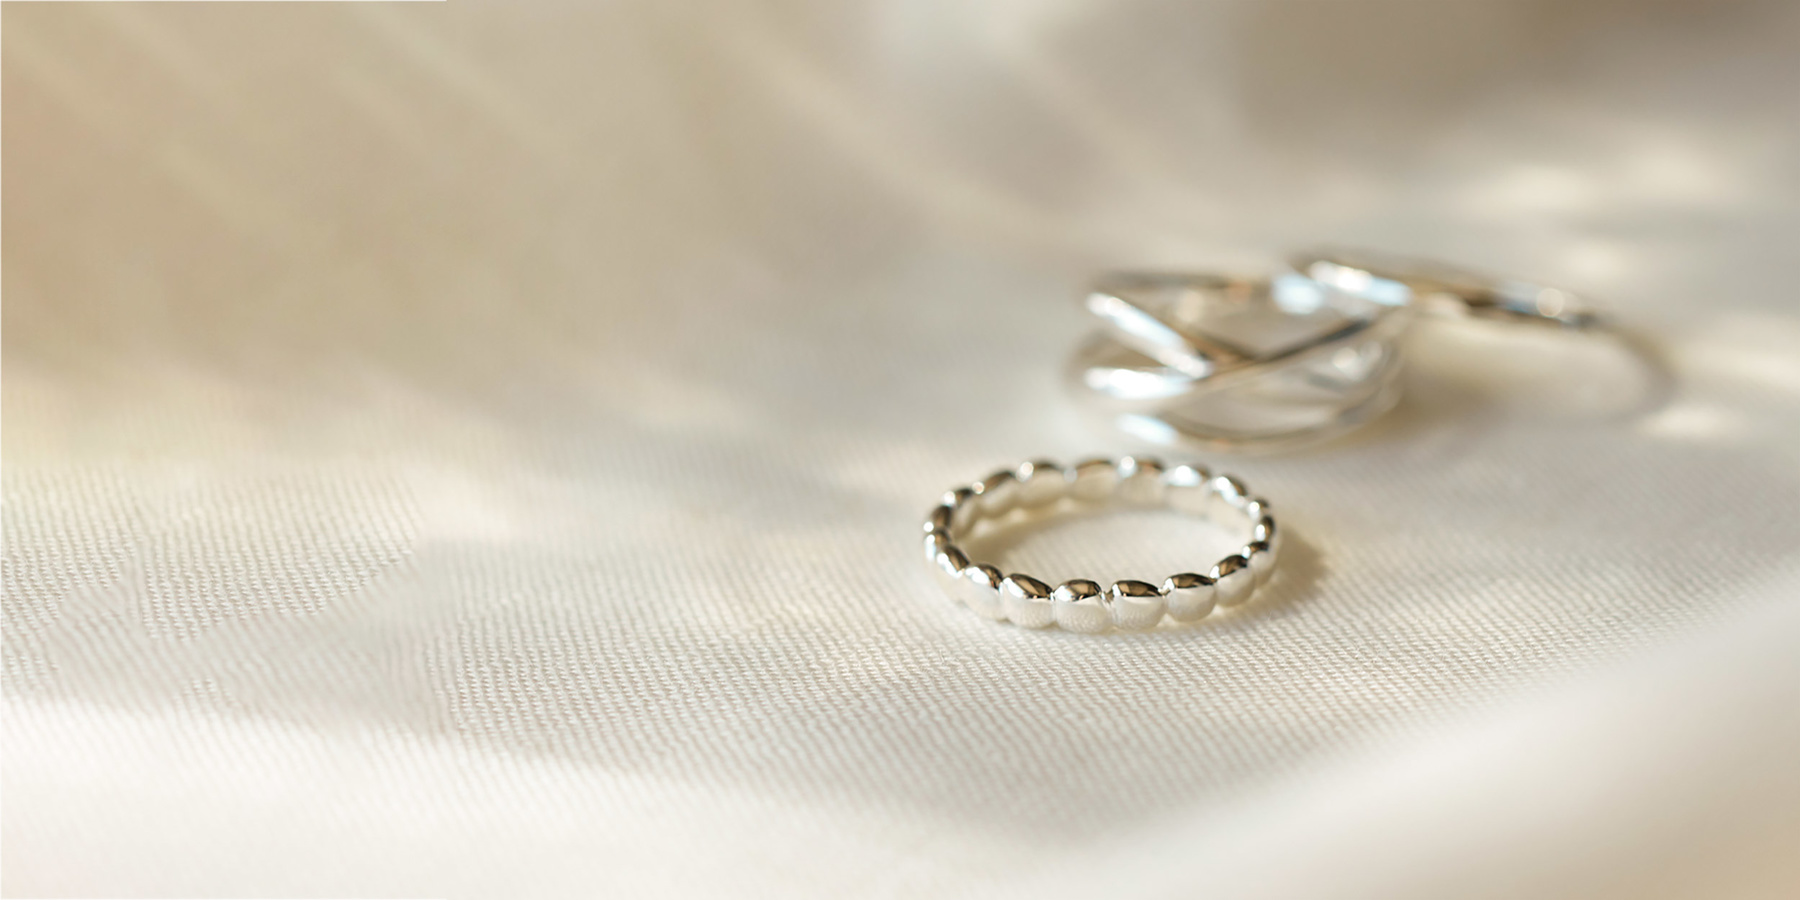 Plain silver rings on white cloth backdrop